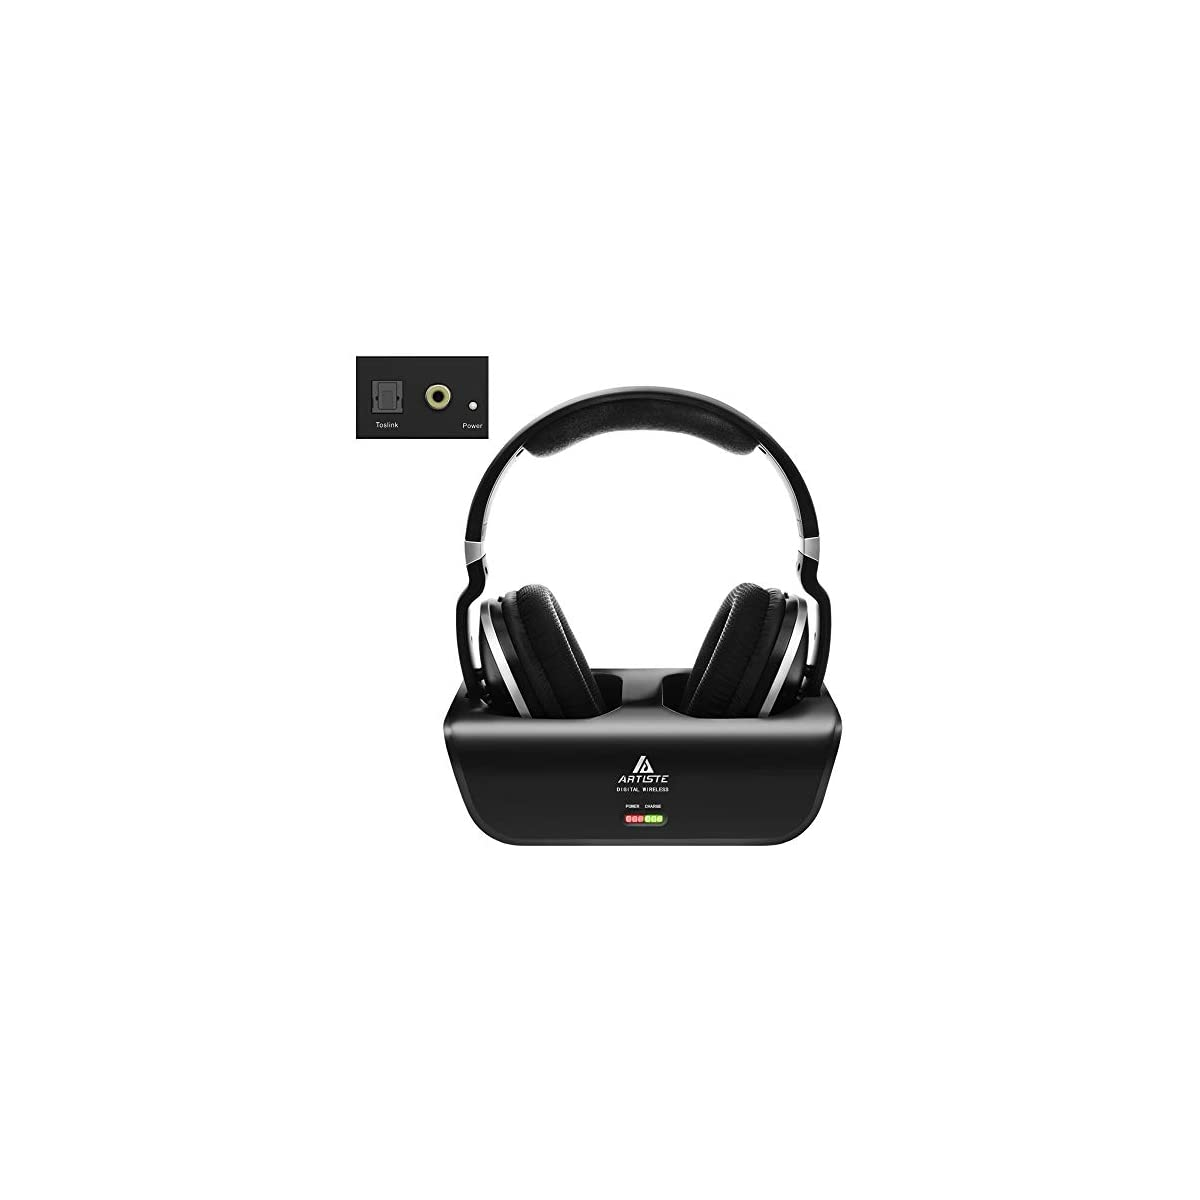 Wireless Headphones For Tv Watching With Optical Artiste Adh300 2 4ghz Digital Wireless Tv Headphones 100ft Distance Rechargeable For Tv Pc Phone Black With Optical Johns1stopshop